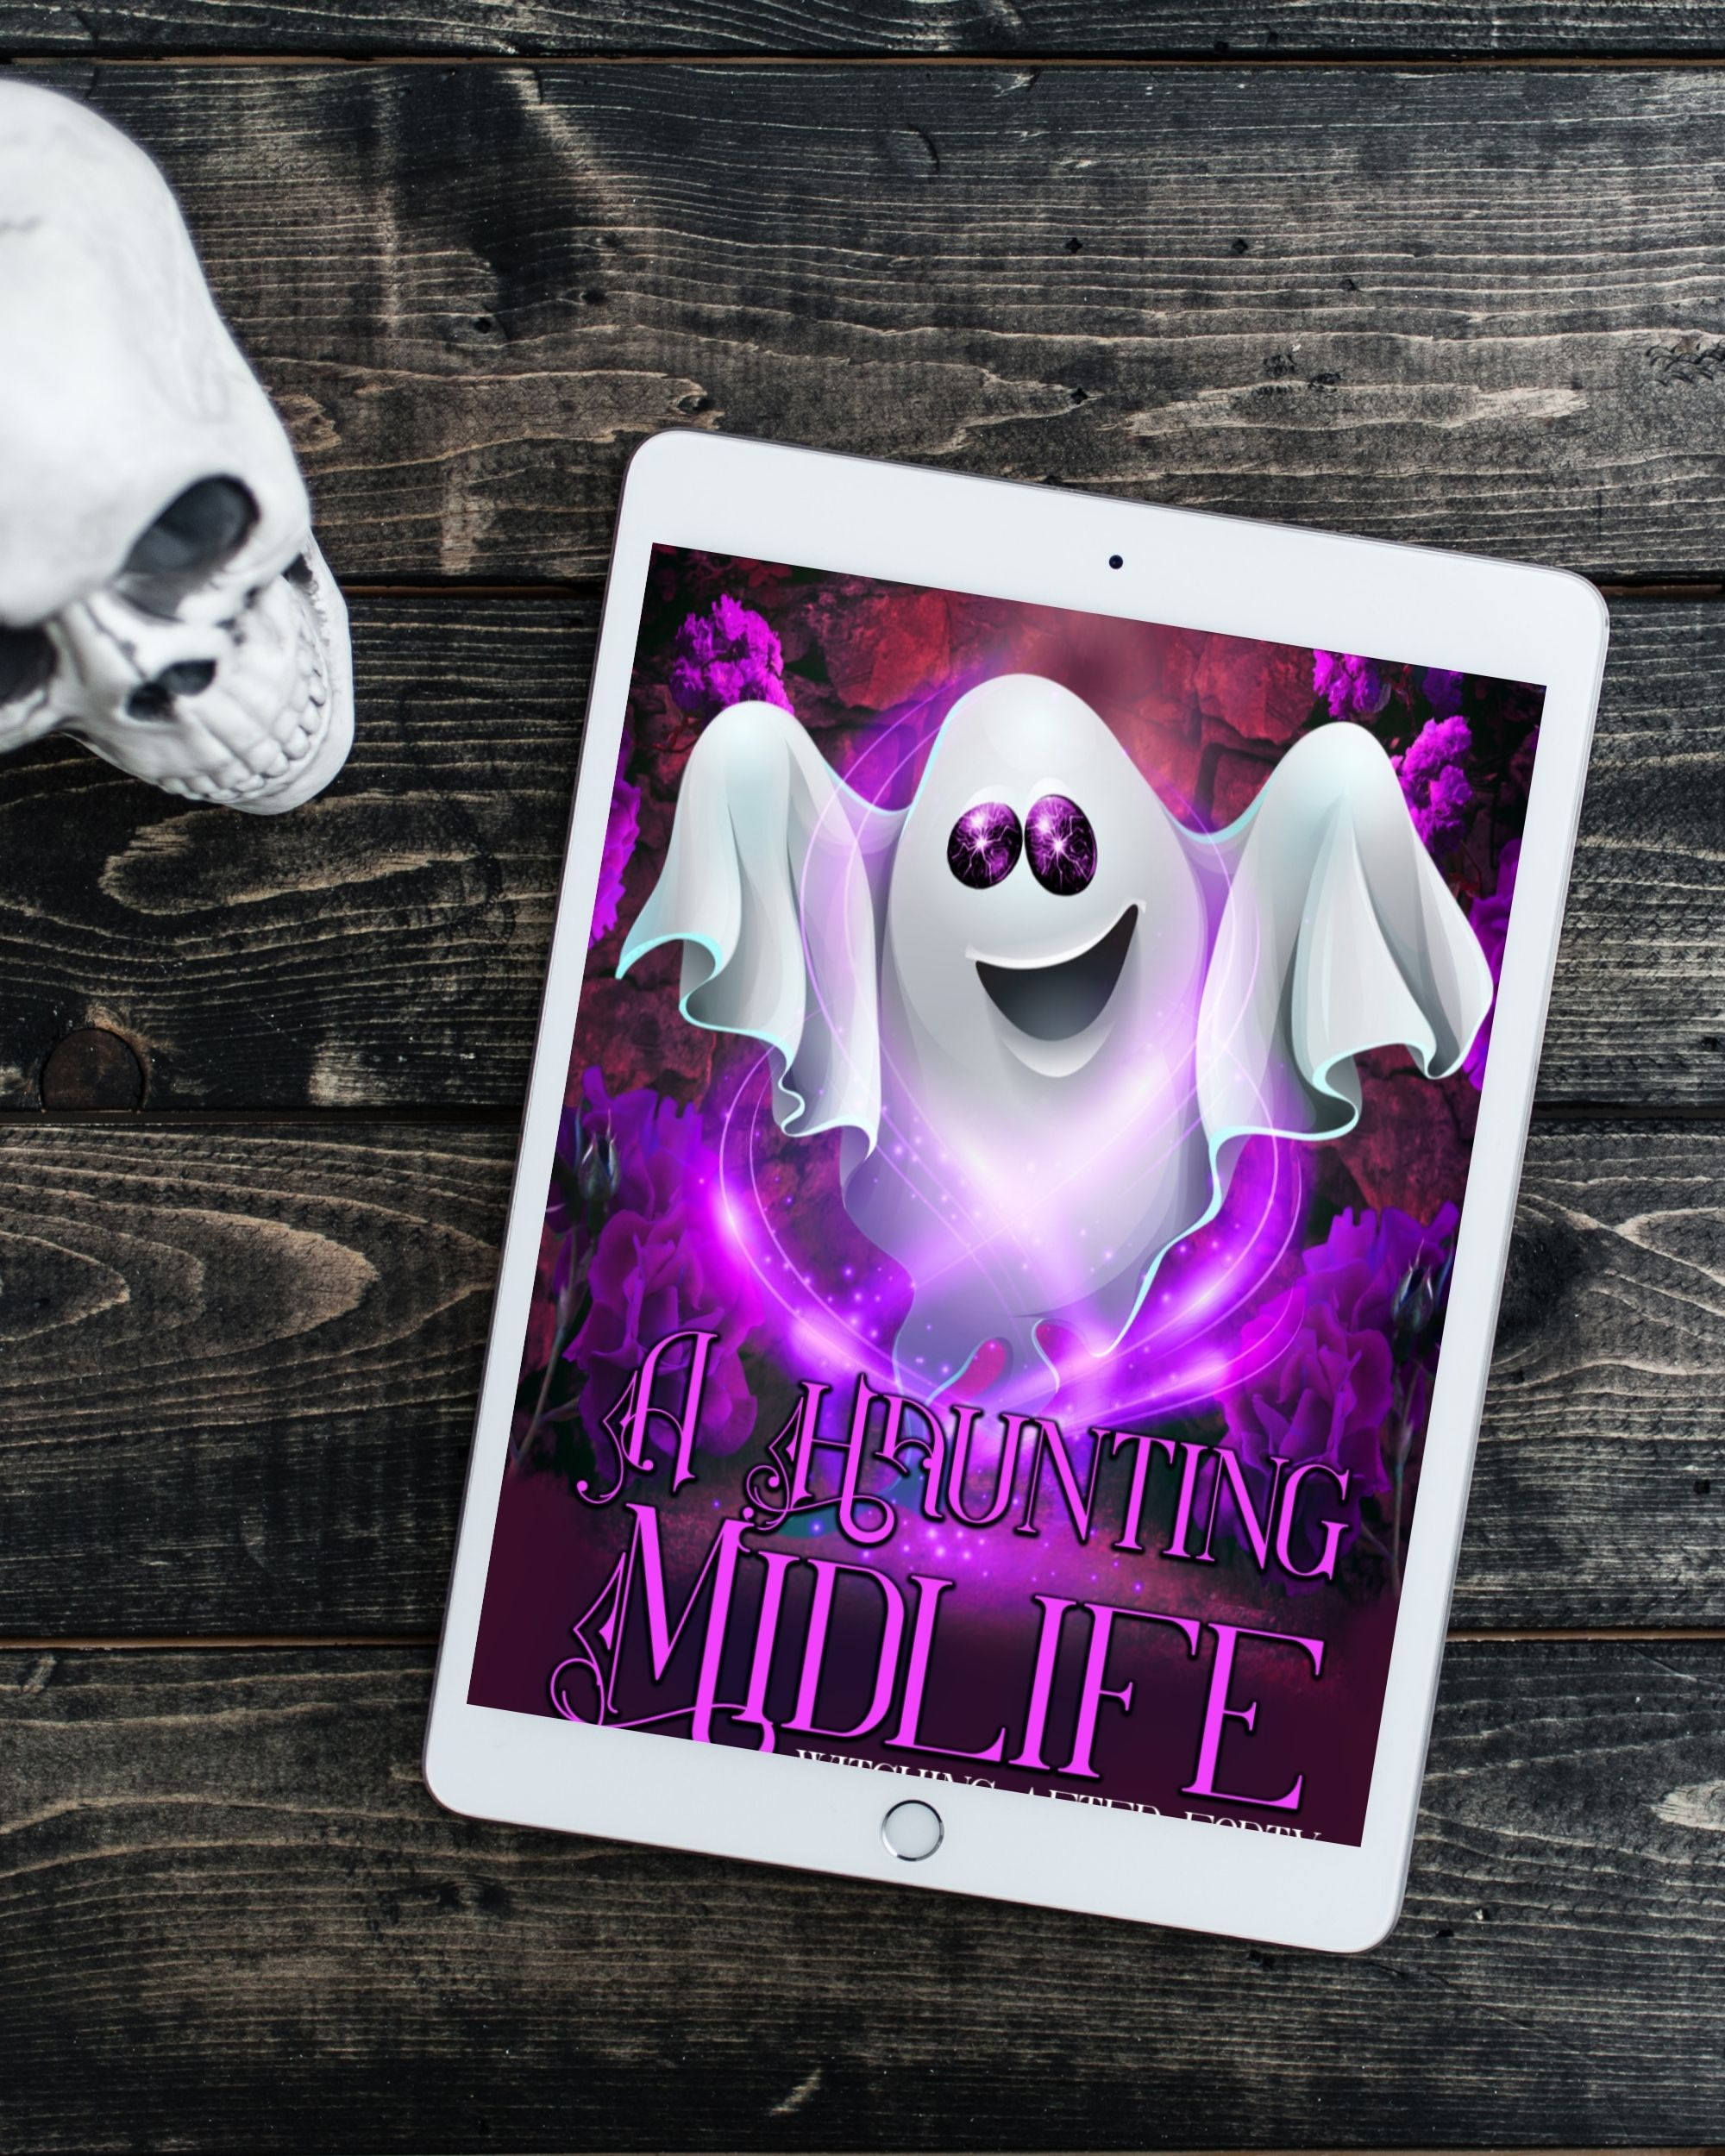 A Haunting Midlife at Wickedly Romance